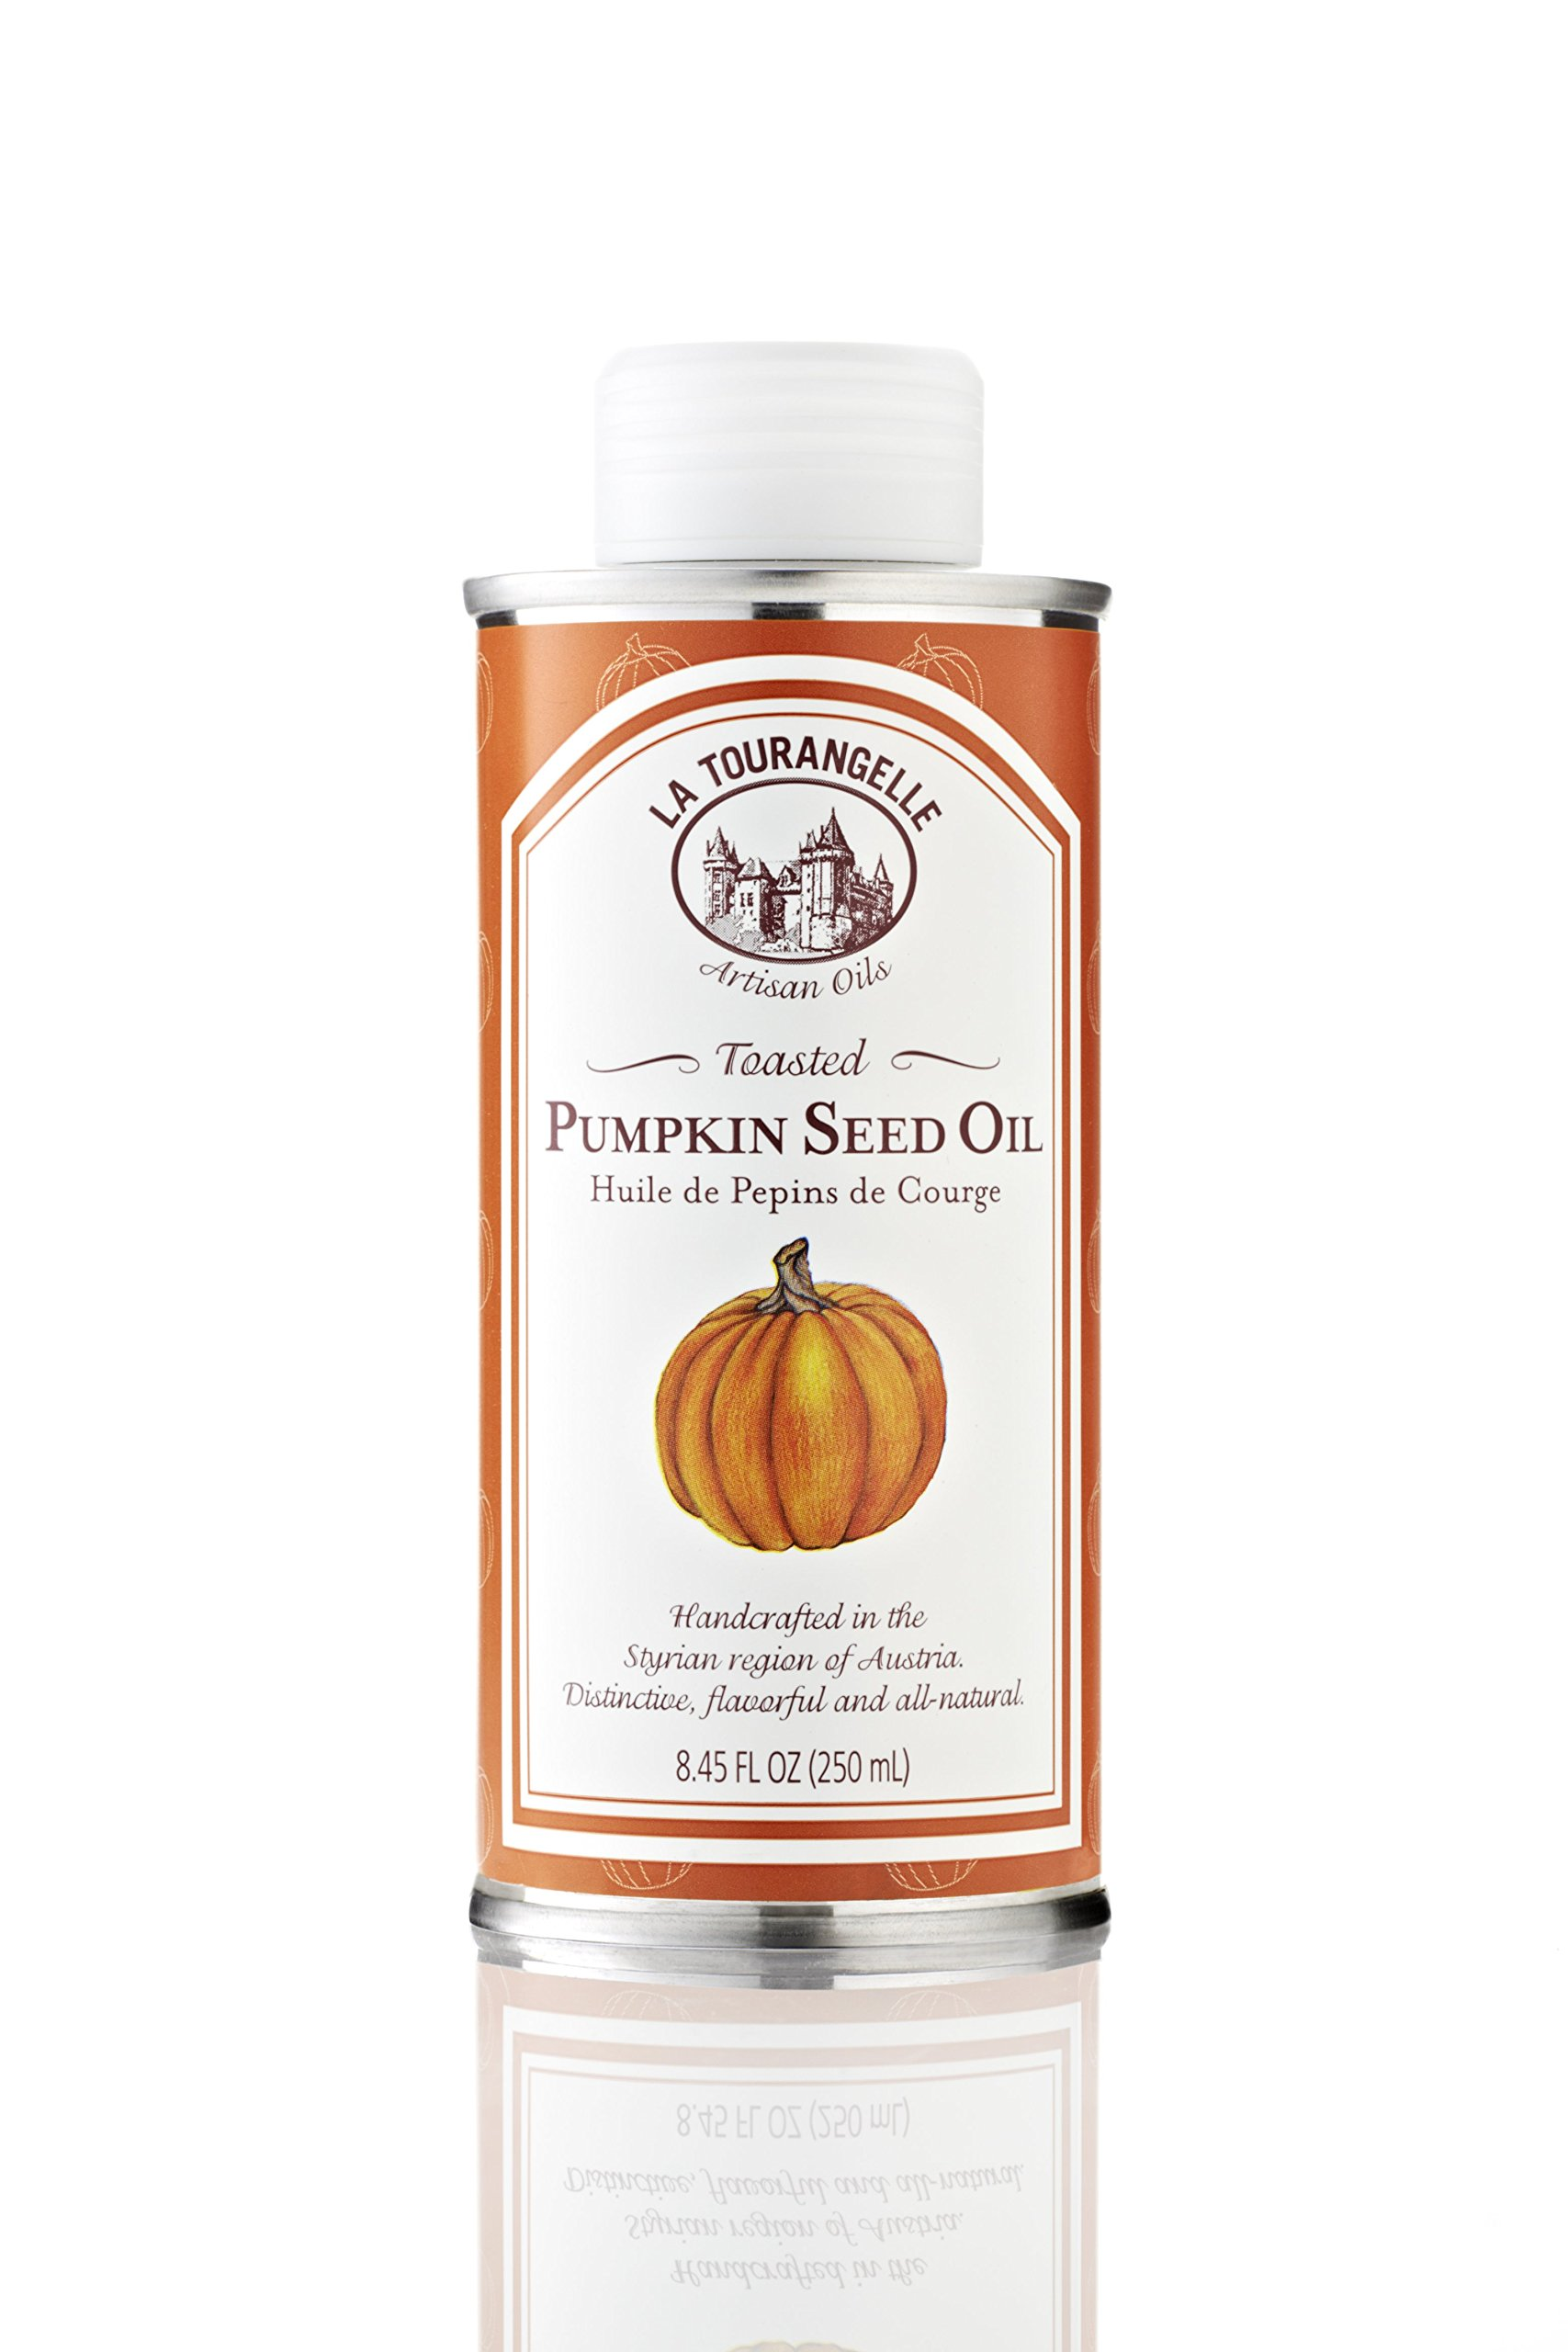 La Tourangelle Toasted Pumpkin Seed Oil, 8.45-Ounce Tins (Pack of 2) by La Tourangelle